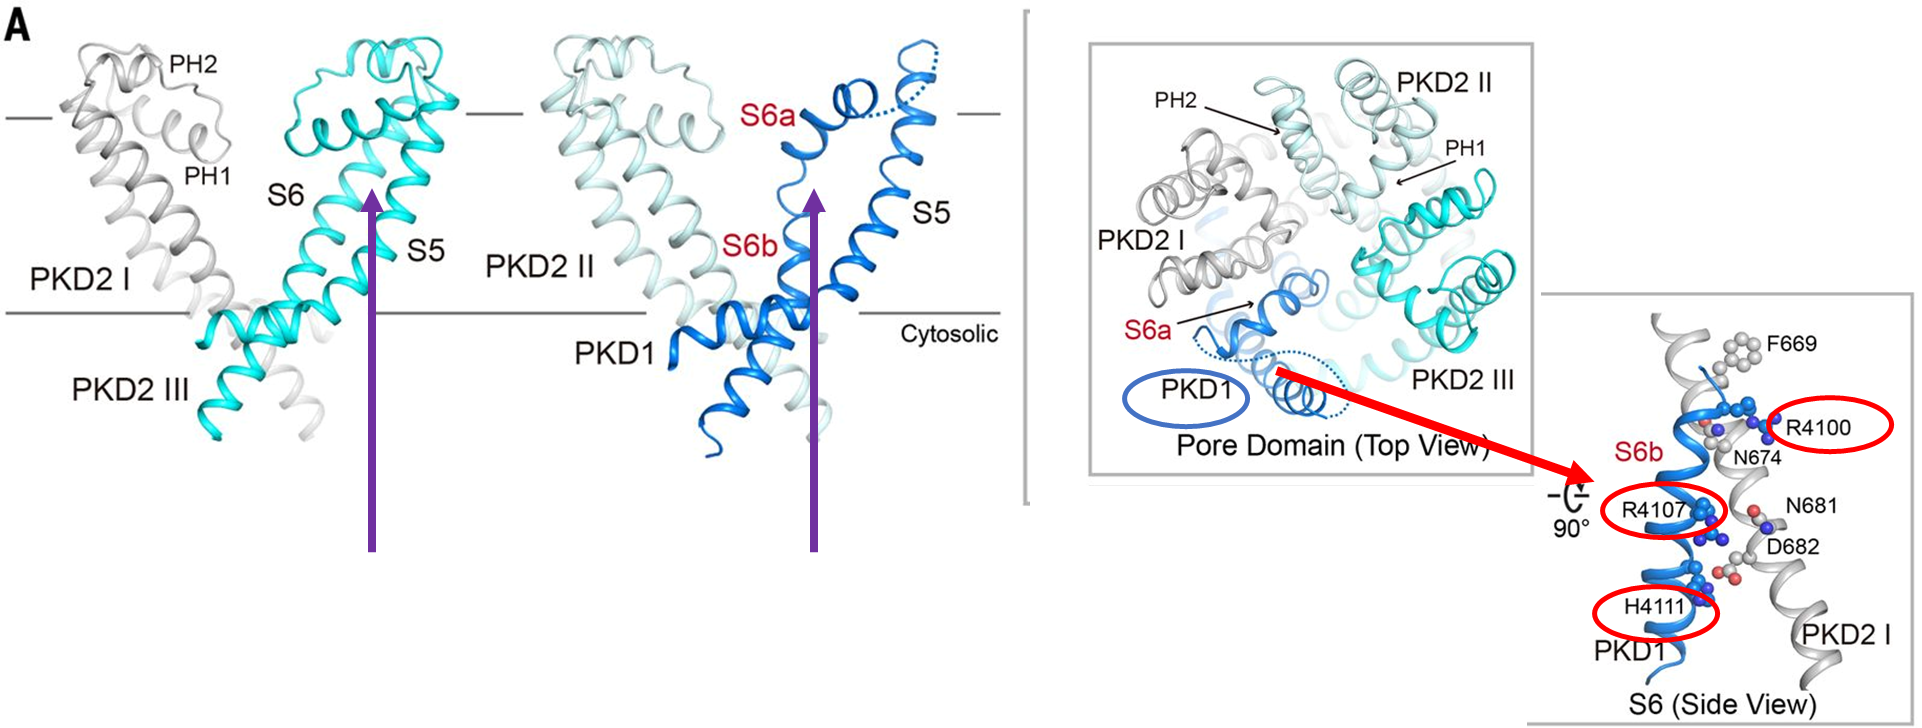 Fig 3 from Su et al, Science 2018, with additional explanatory markers (see below for explanation). PKD1 disrupts the fourfold symmetry of an otherwise typical VGIC fold. PKD1-S6 exhibits a distinct conformation from all VGIC channels of known structures. Whereas the sequences corresponding to the selectivity filter and the supporting helices (PH1 and PH2) are invisible in PKD1, the extracellular segment of the bent S6 resembles PH1. (   B   ) Three positively charged residues on S6bPKD1 may block cation permeation. Right: The conformation of S6bPKD1 is stabilized by residues on PKD2-S6I. The discussed residues are shown as spheres. (   C   ) When viewed from the cytosolic side, S6PKD1 displays a 15° deviation from the expected position for a fourfold symmetry.